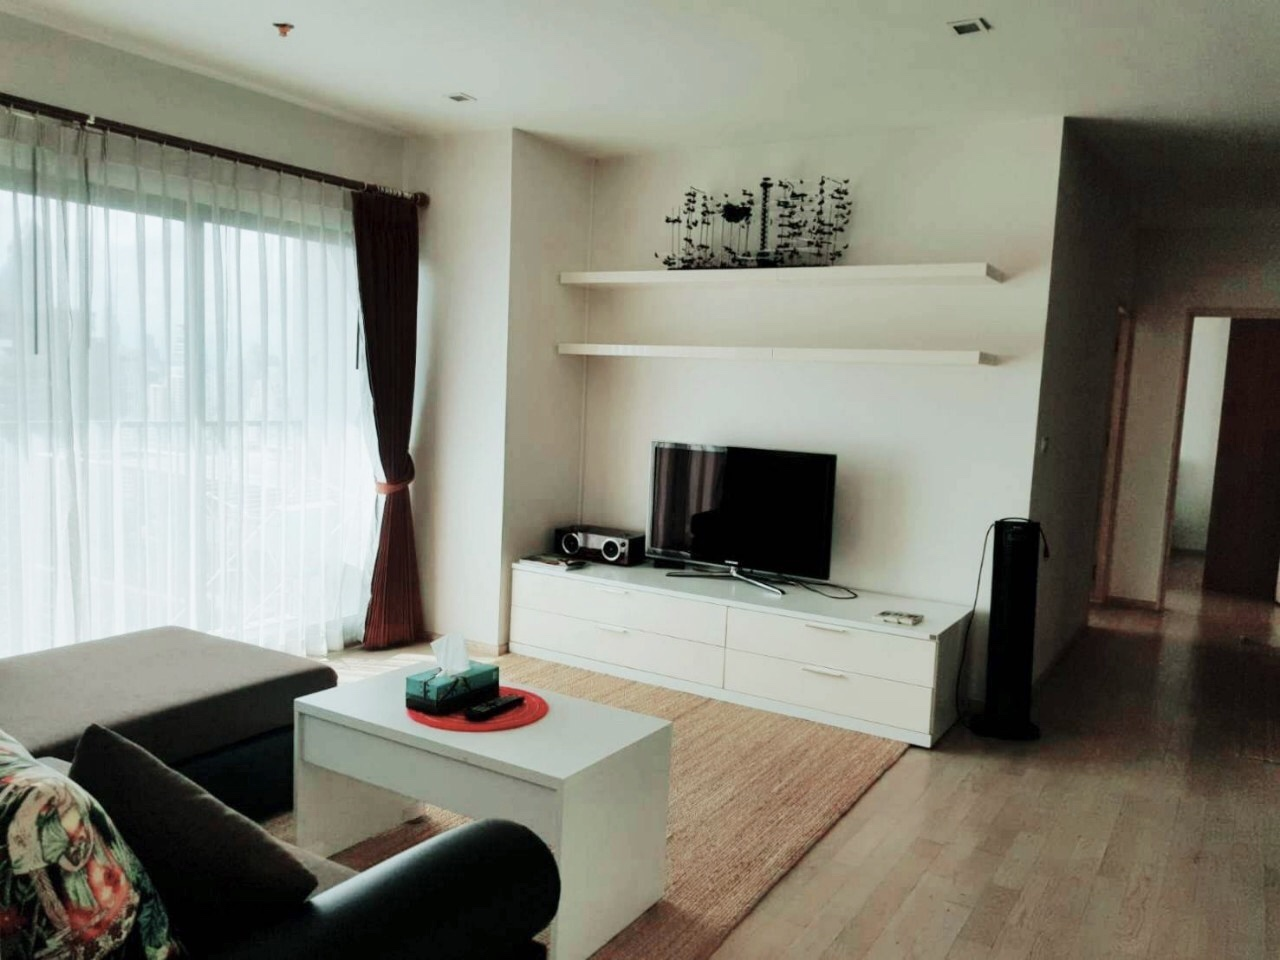 For Rent Noble Remix 3Bedrooms 107Sqm 55K Per Month Fully Furnished ให้เช่า คอนโด โนเบิล รีมิกซ์